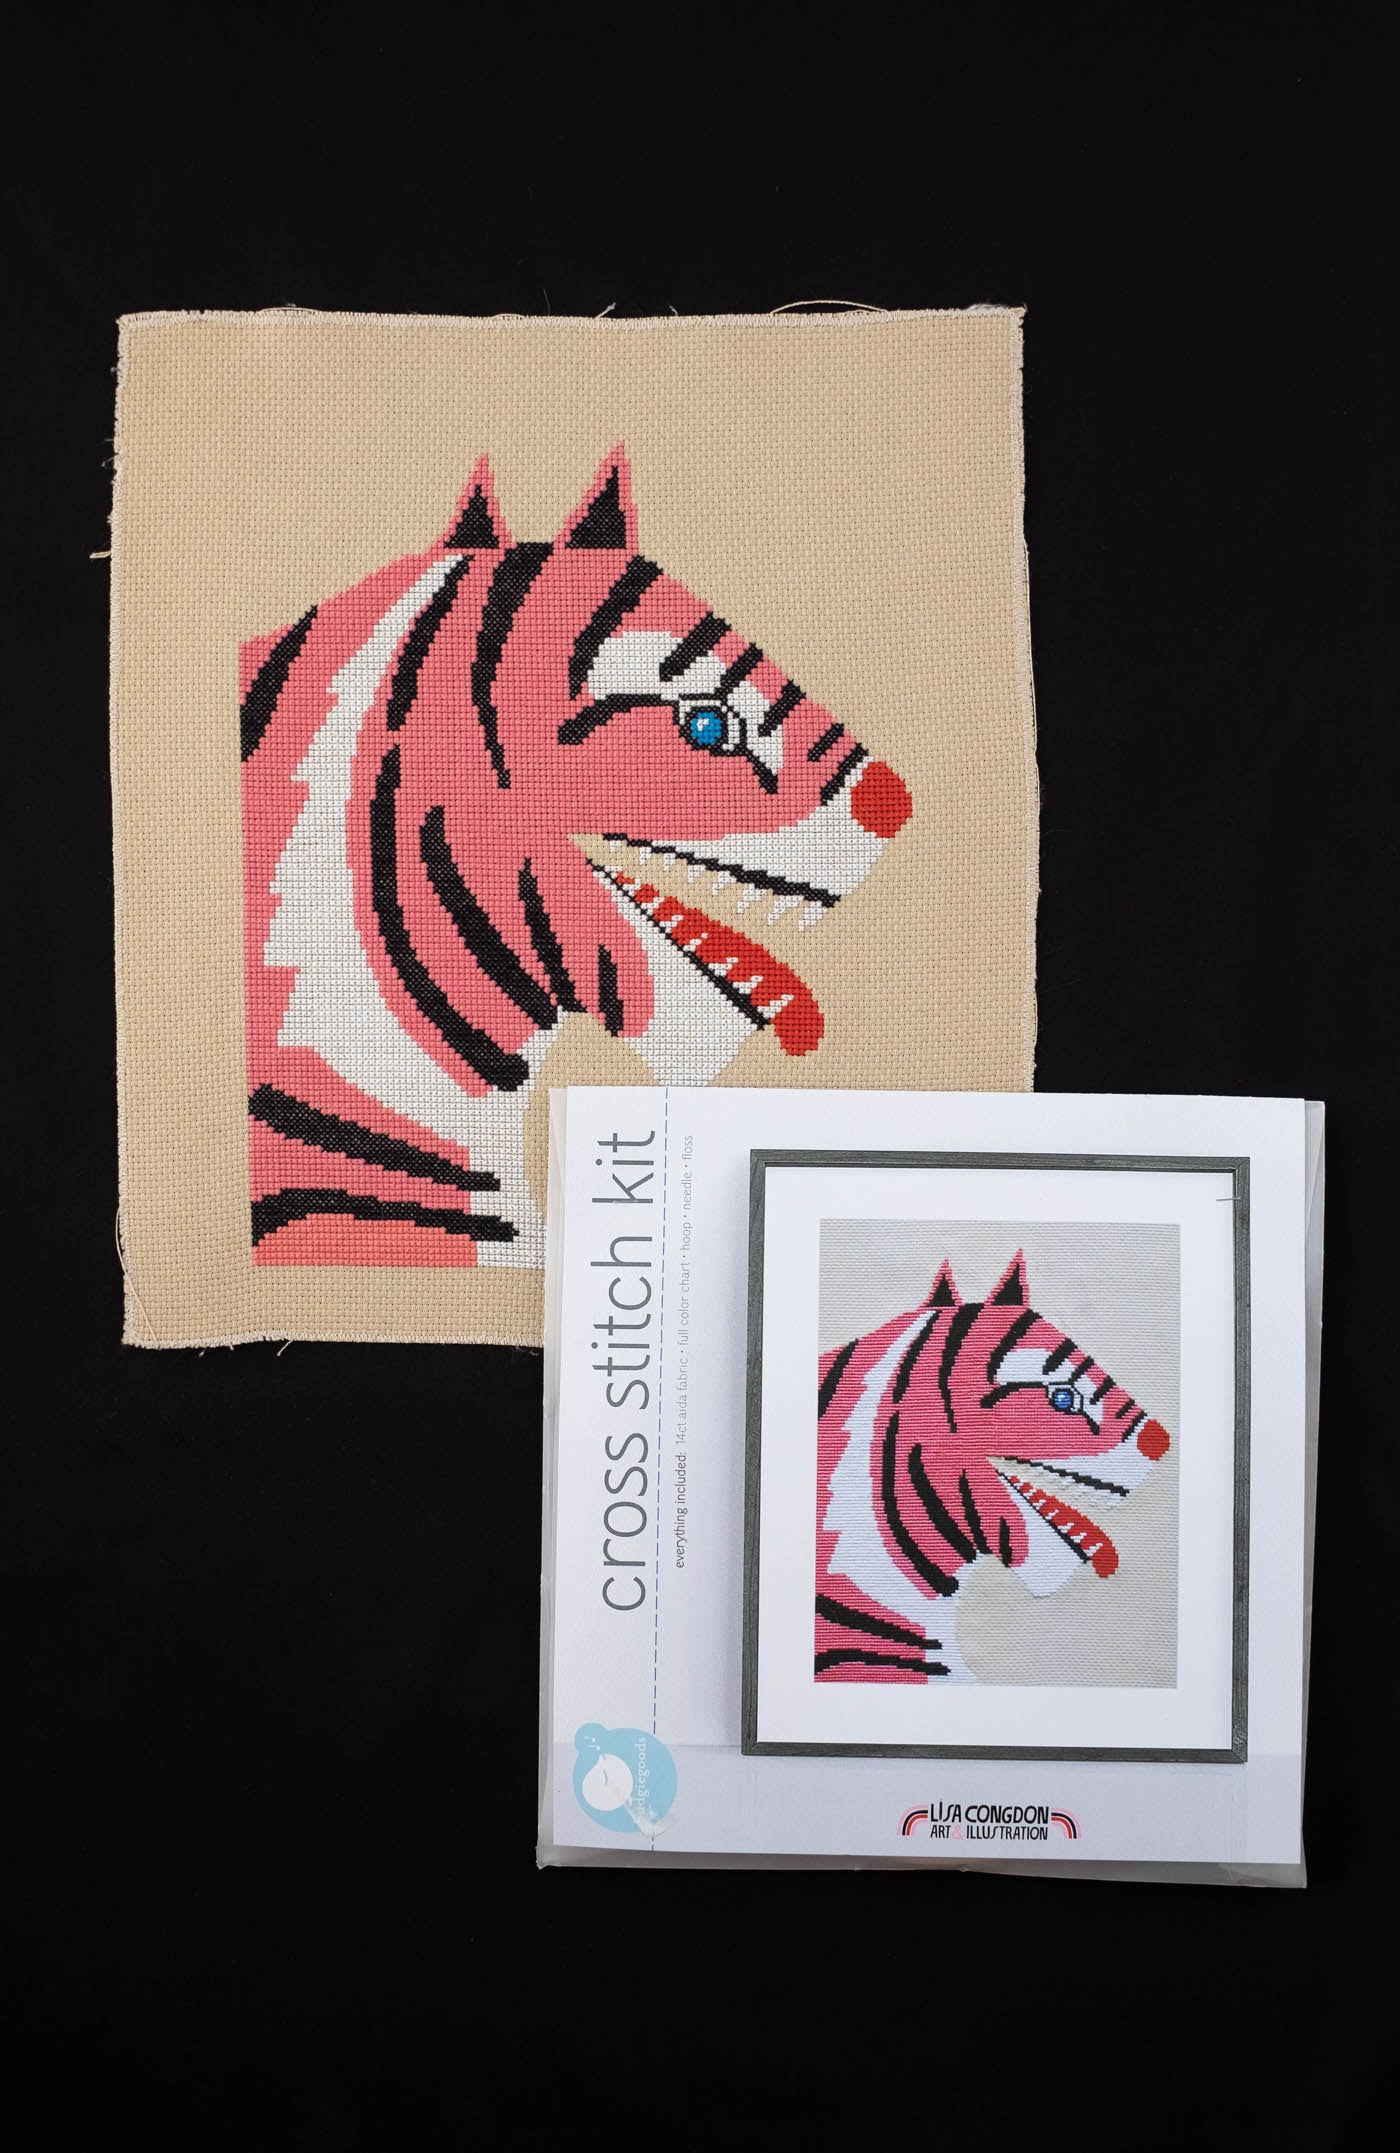 Lisa Congdon's Fangs Out Cross Stitch Kit of a tiger with blue eyes, red nose/tongue and striped in white, black and pink.  Lay flat photograph along with the packaging you buy it in.